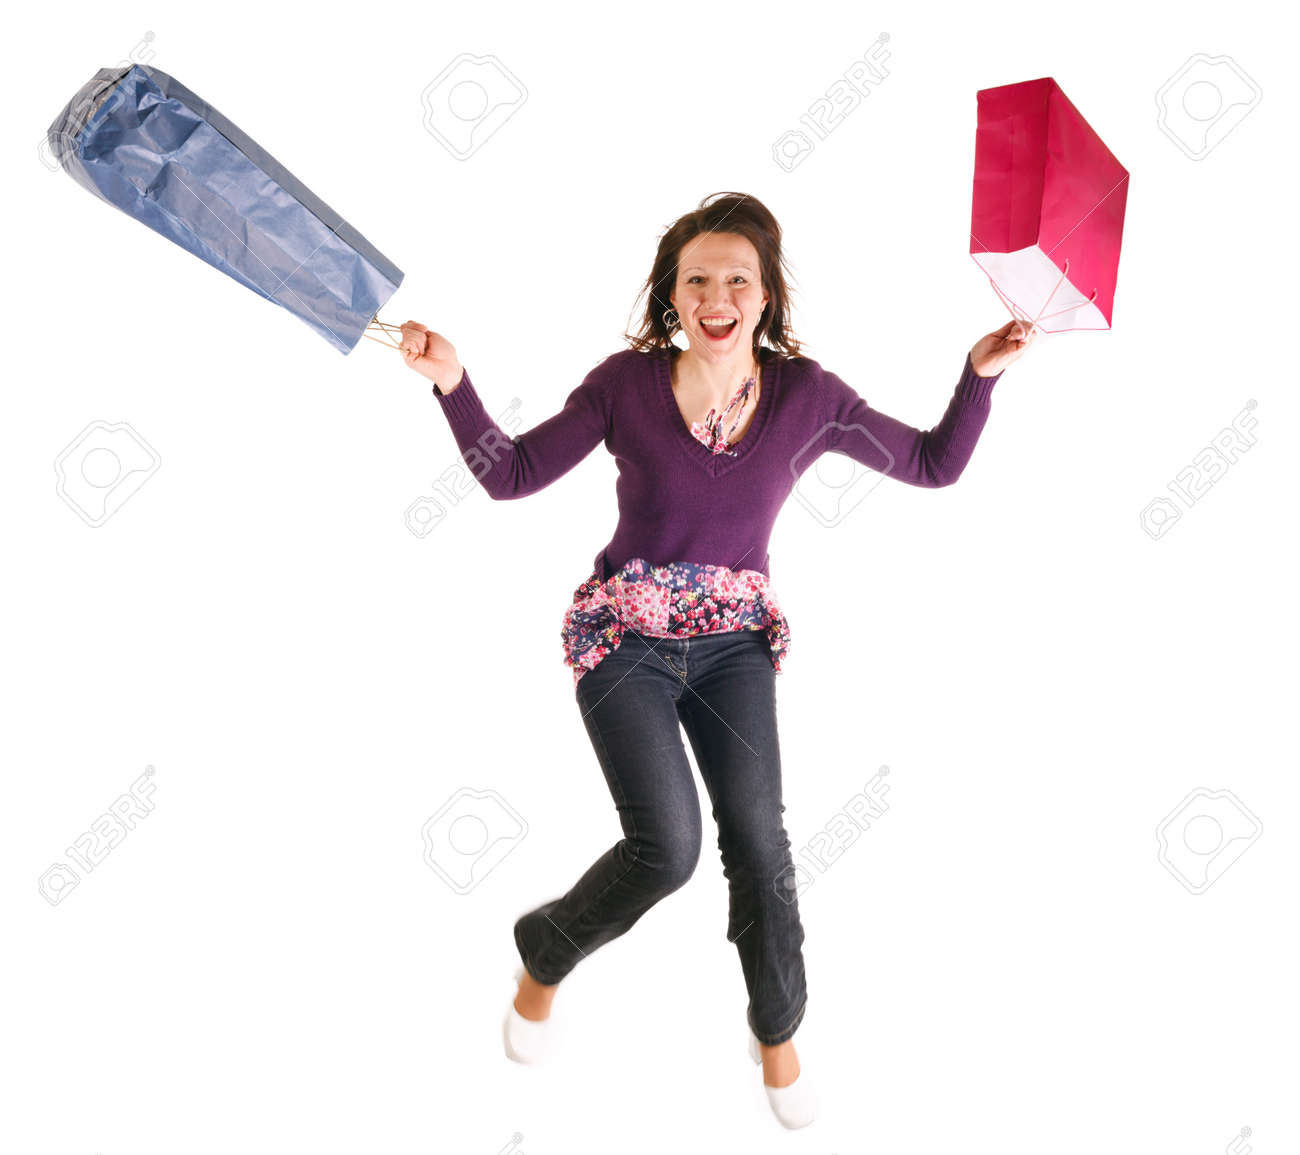 happy woman jumping with shopping bags over white background,motion on foots Stock Photo - 3976432